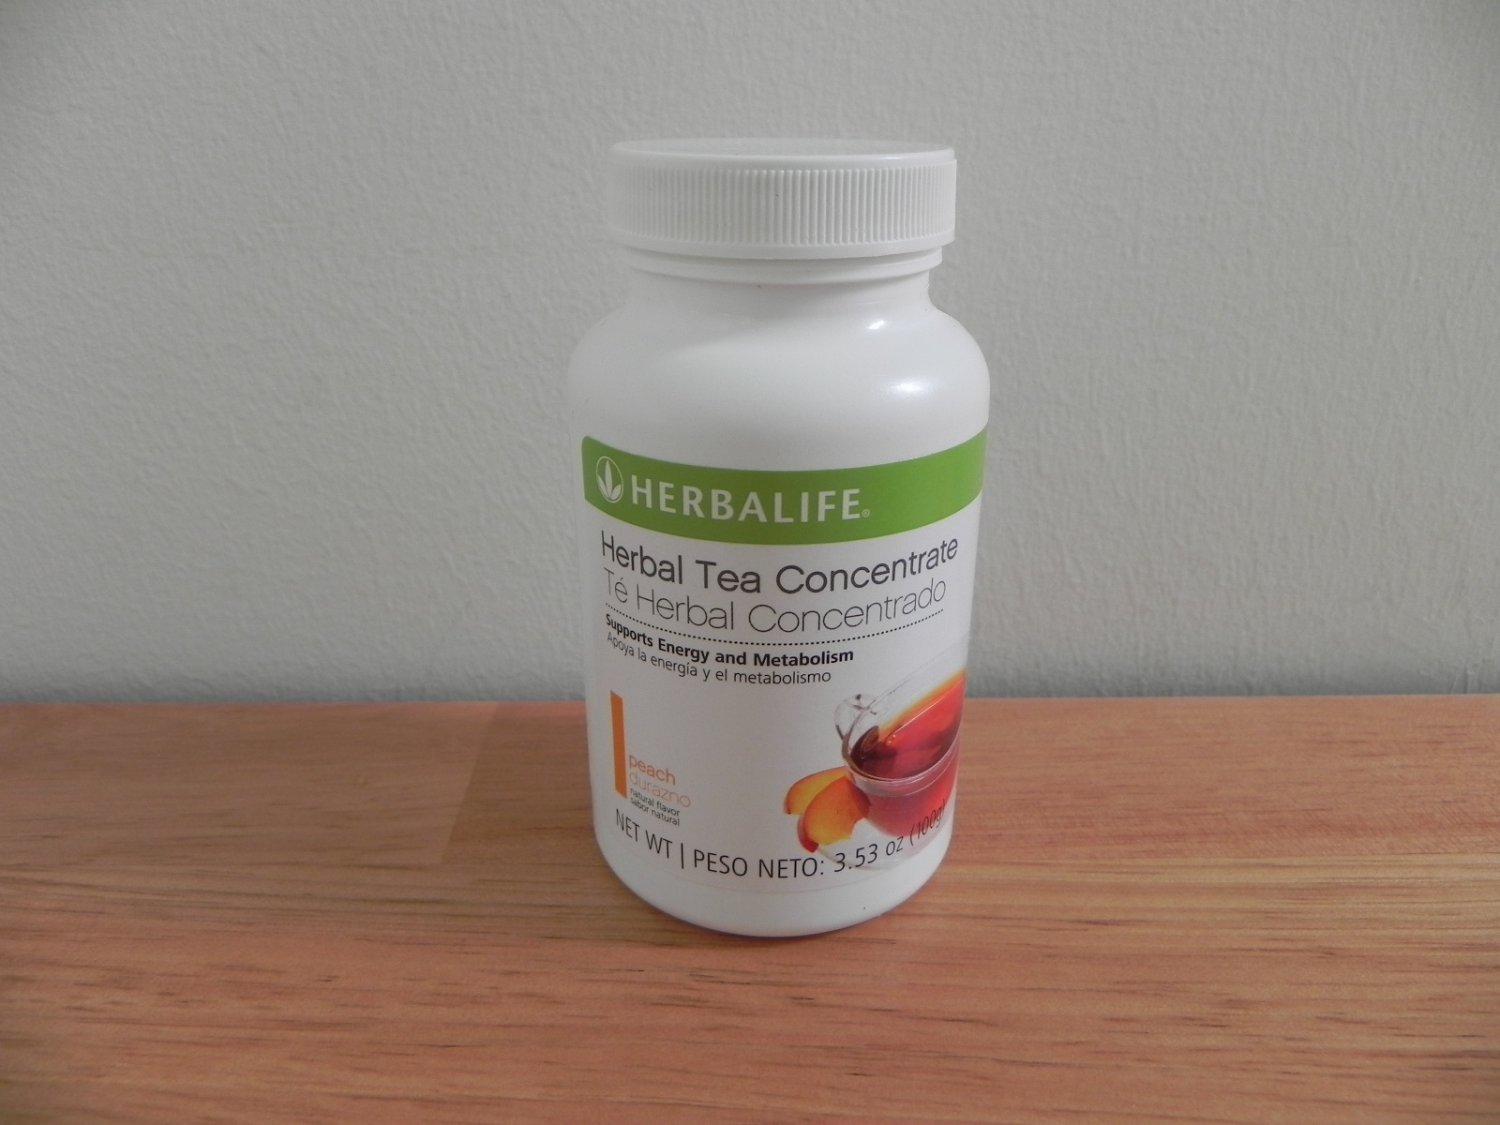 Herbalife Herbal Tea Concentrate 3.53oz 100g Peach Fresh exp 7/2016 or better